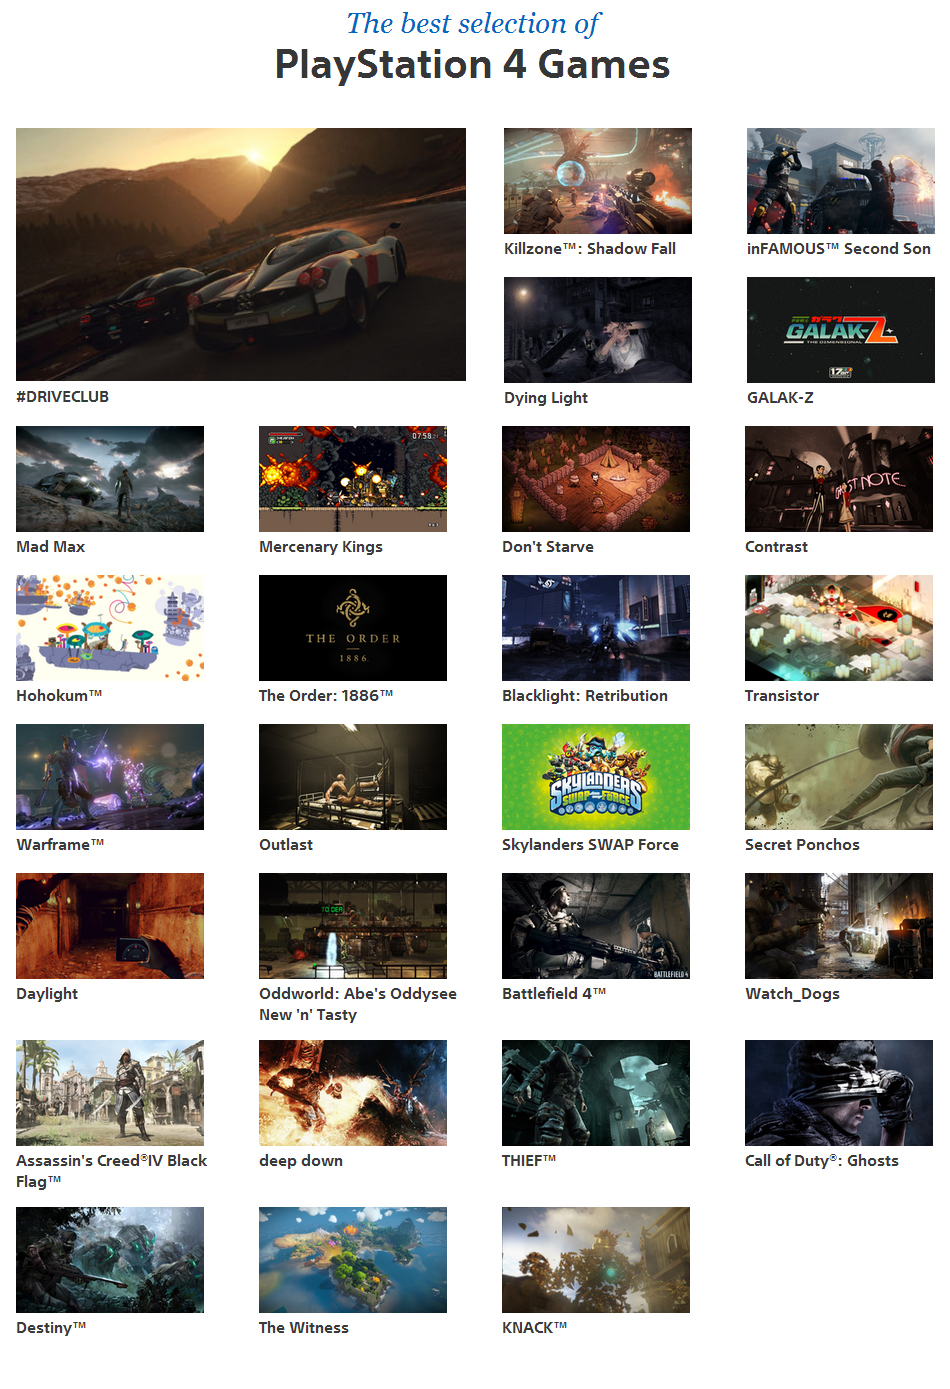 Sony shows stellar PS4 line-up on official site - indies and blockbuster games